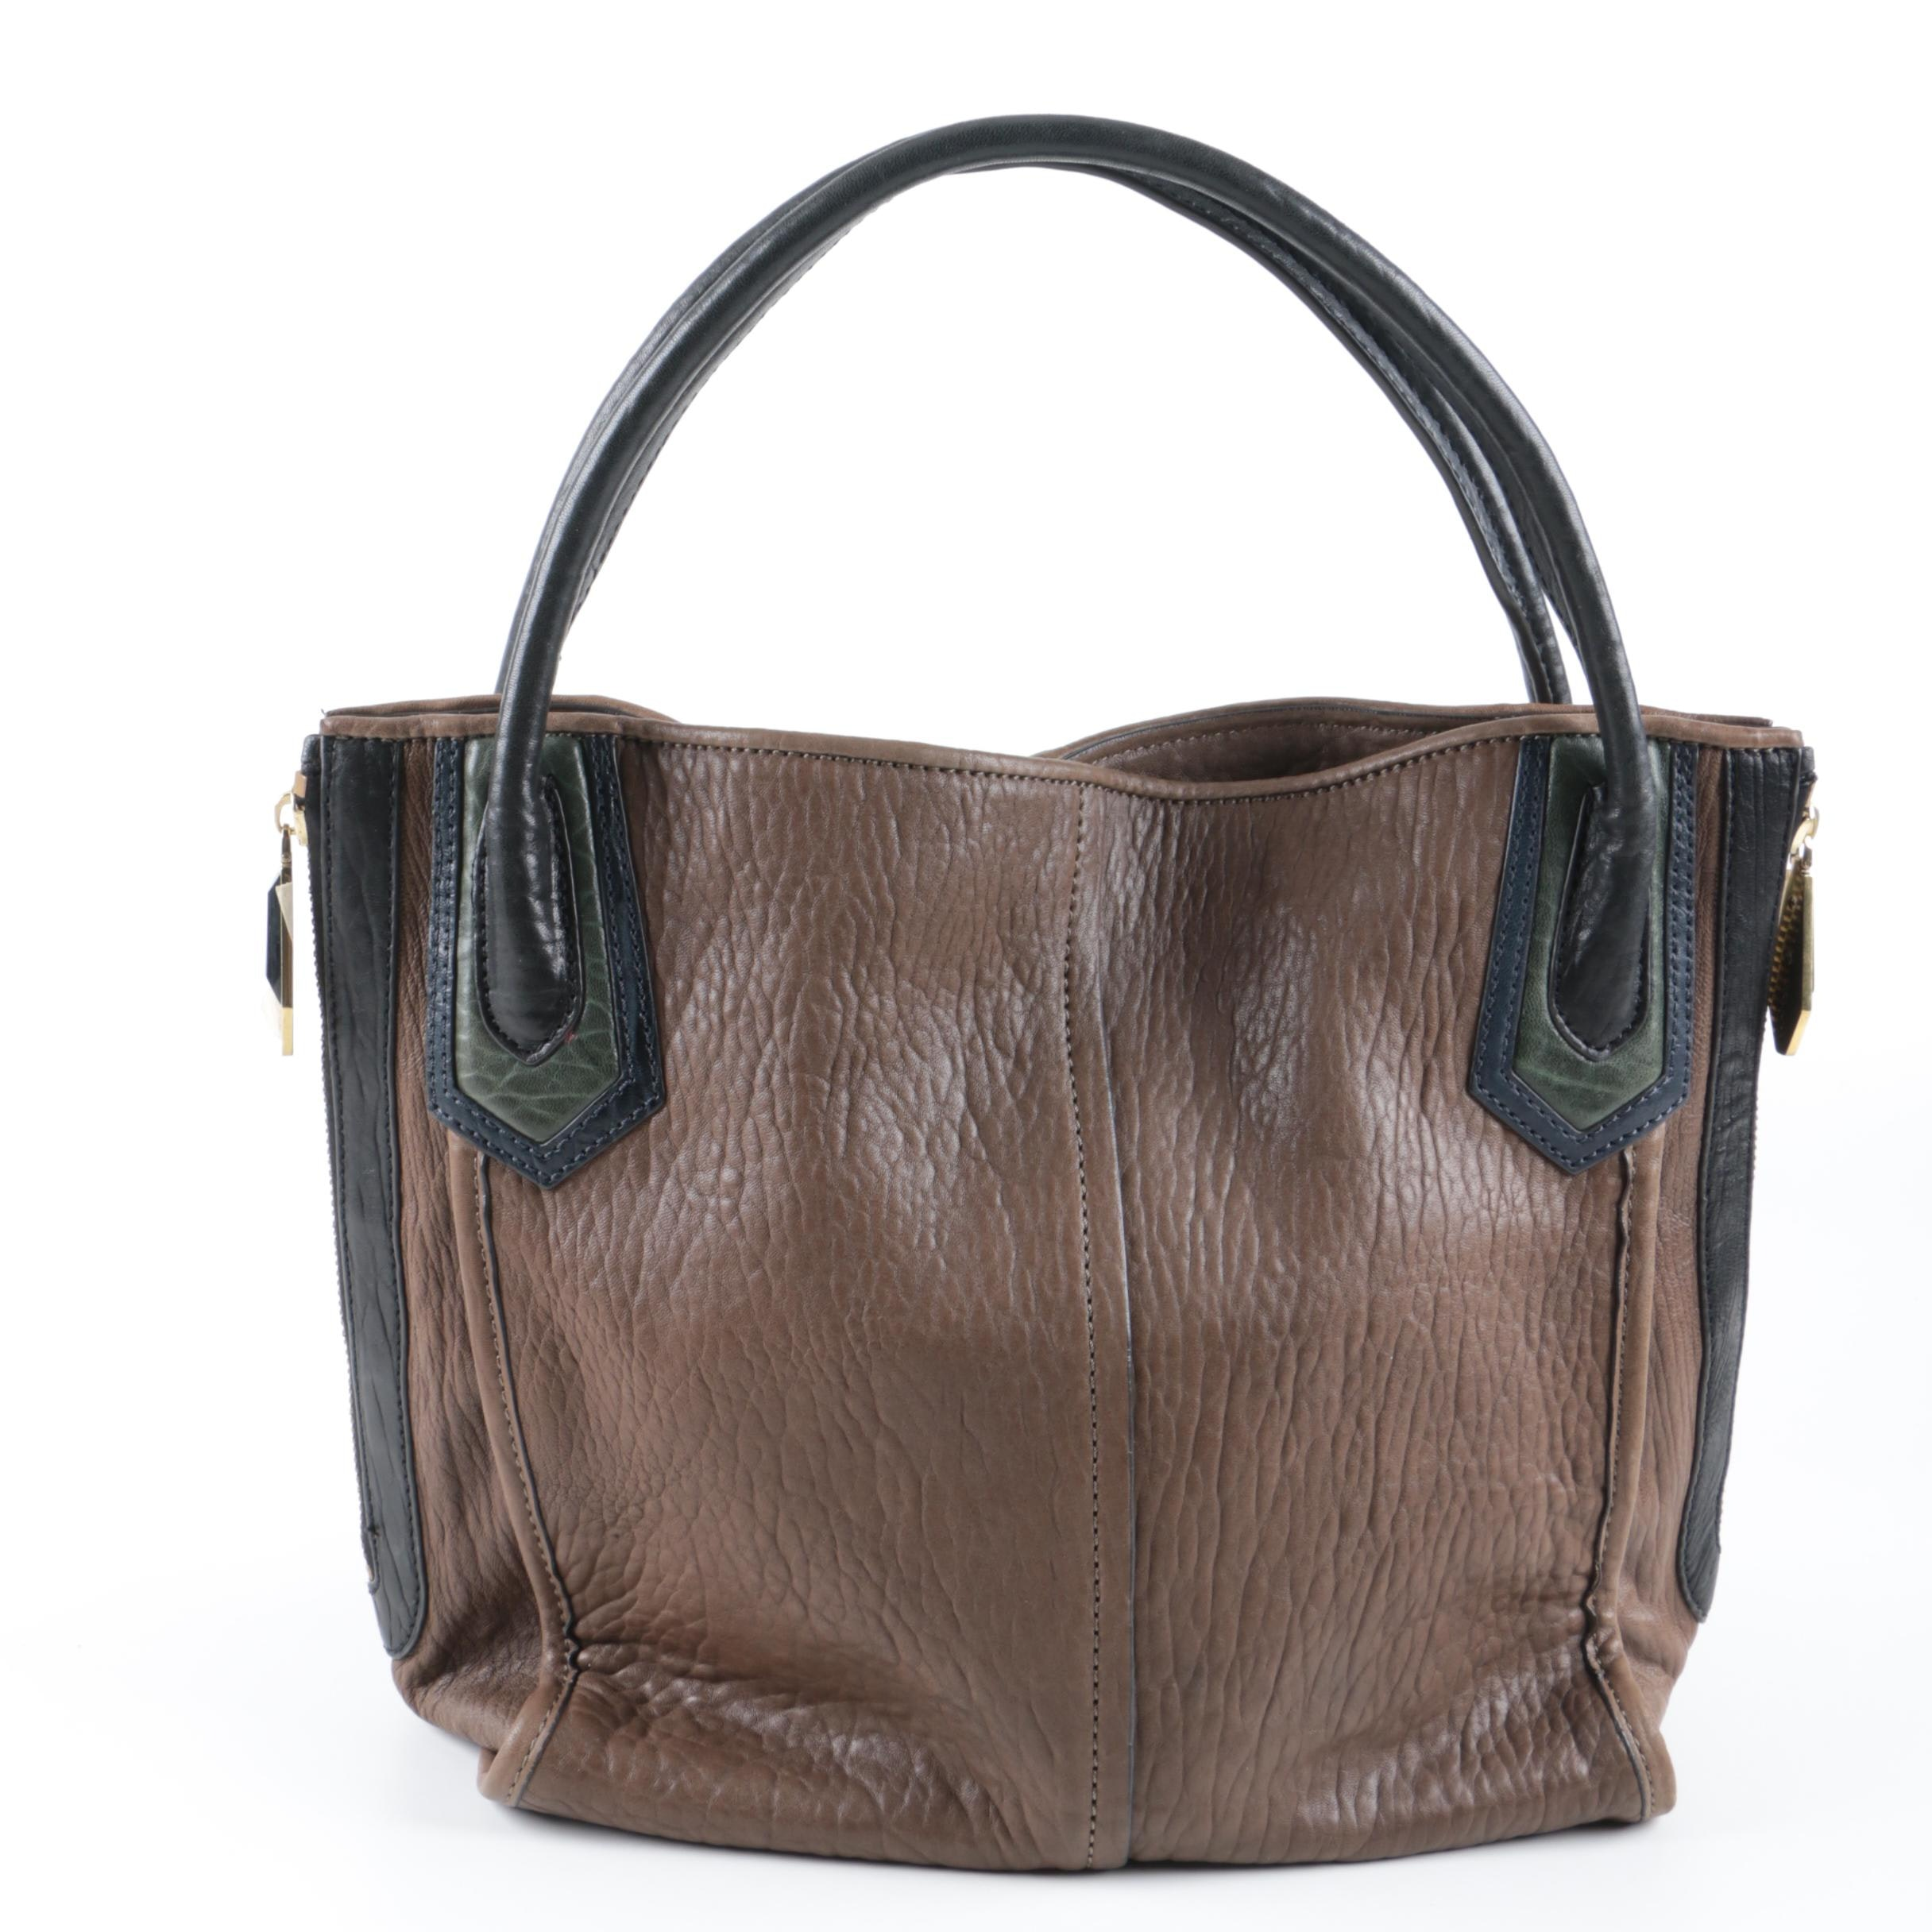 Oryany Textured Leather Tote Bag